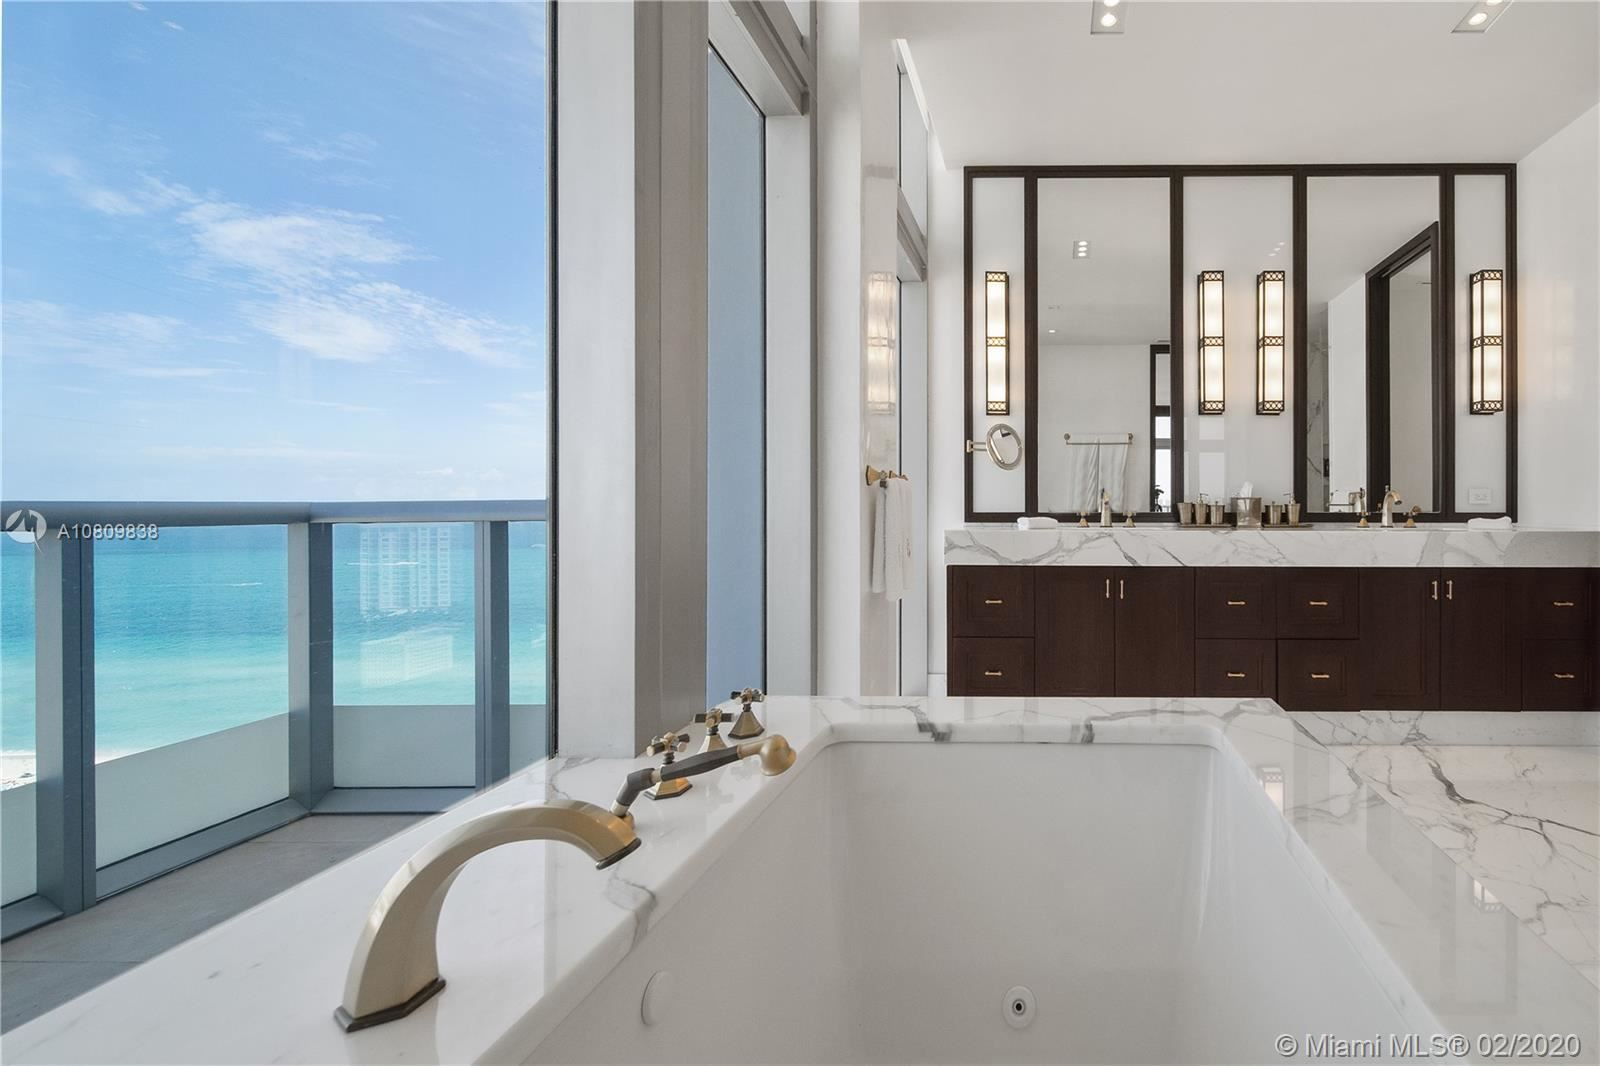 Photo 18 of Listing MLS a10809838 in 3737 Collins Ave #PH-4 Miami Beach FL 33140